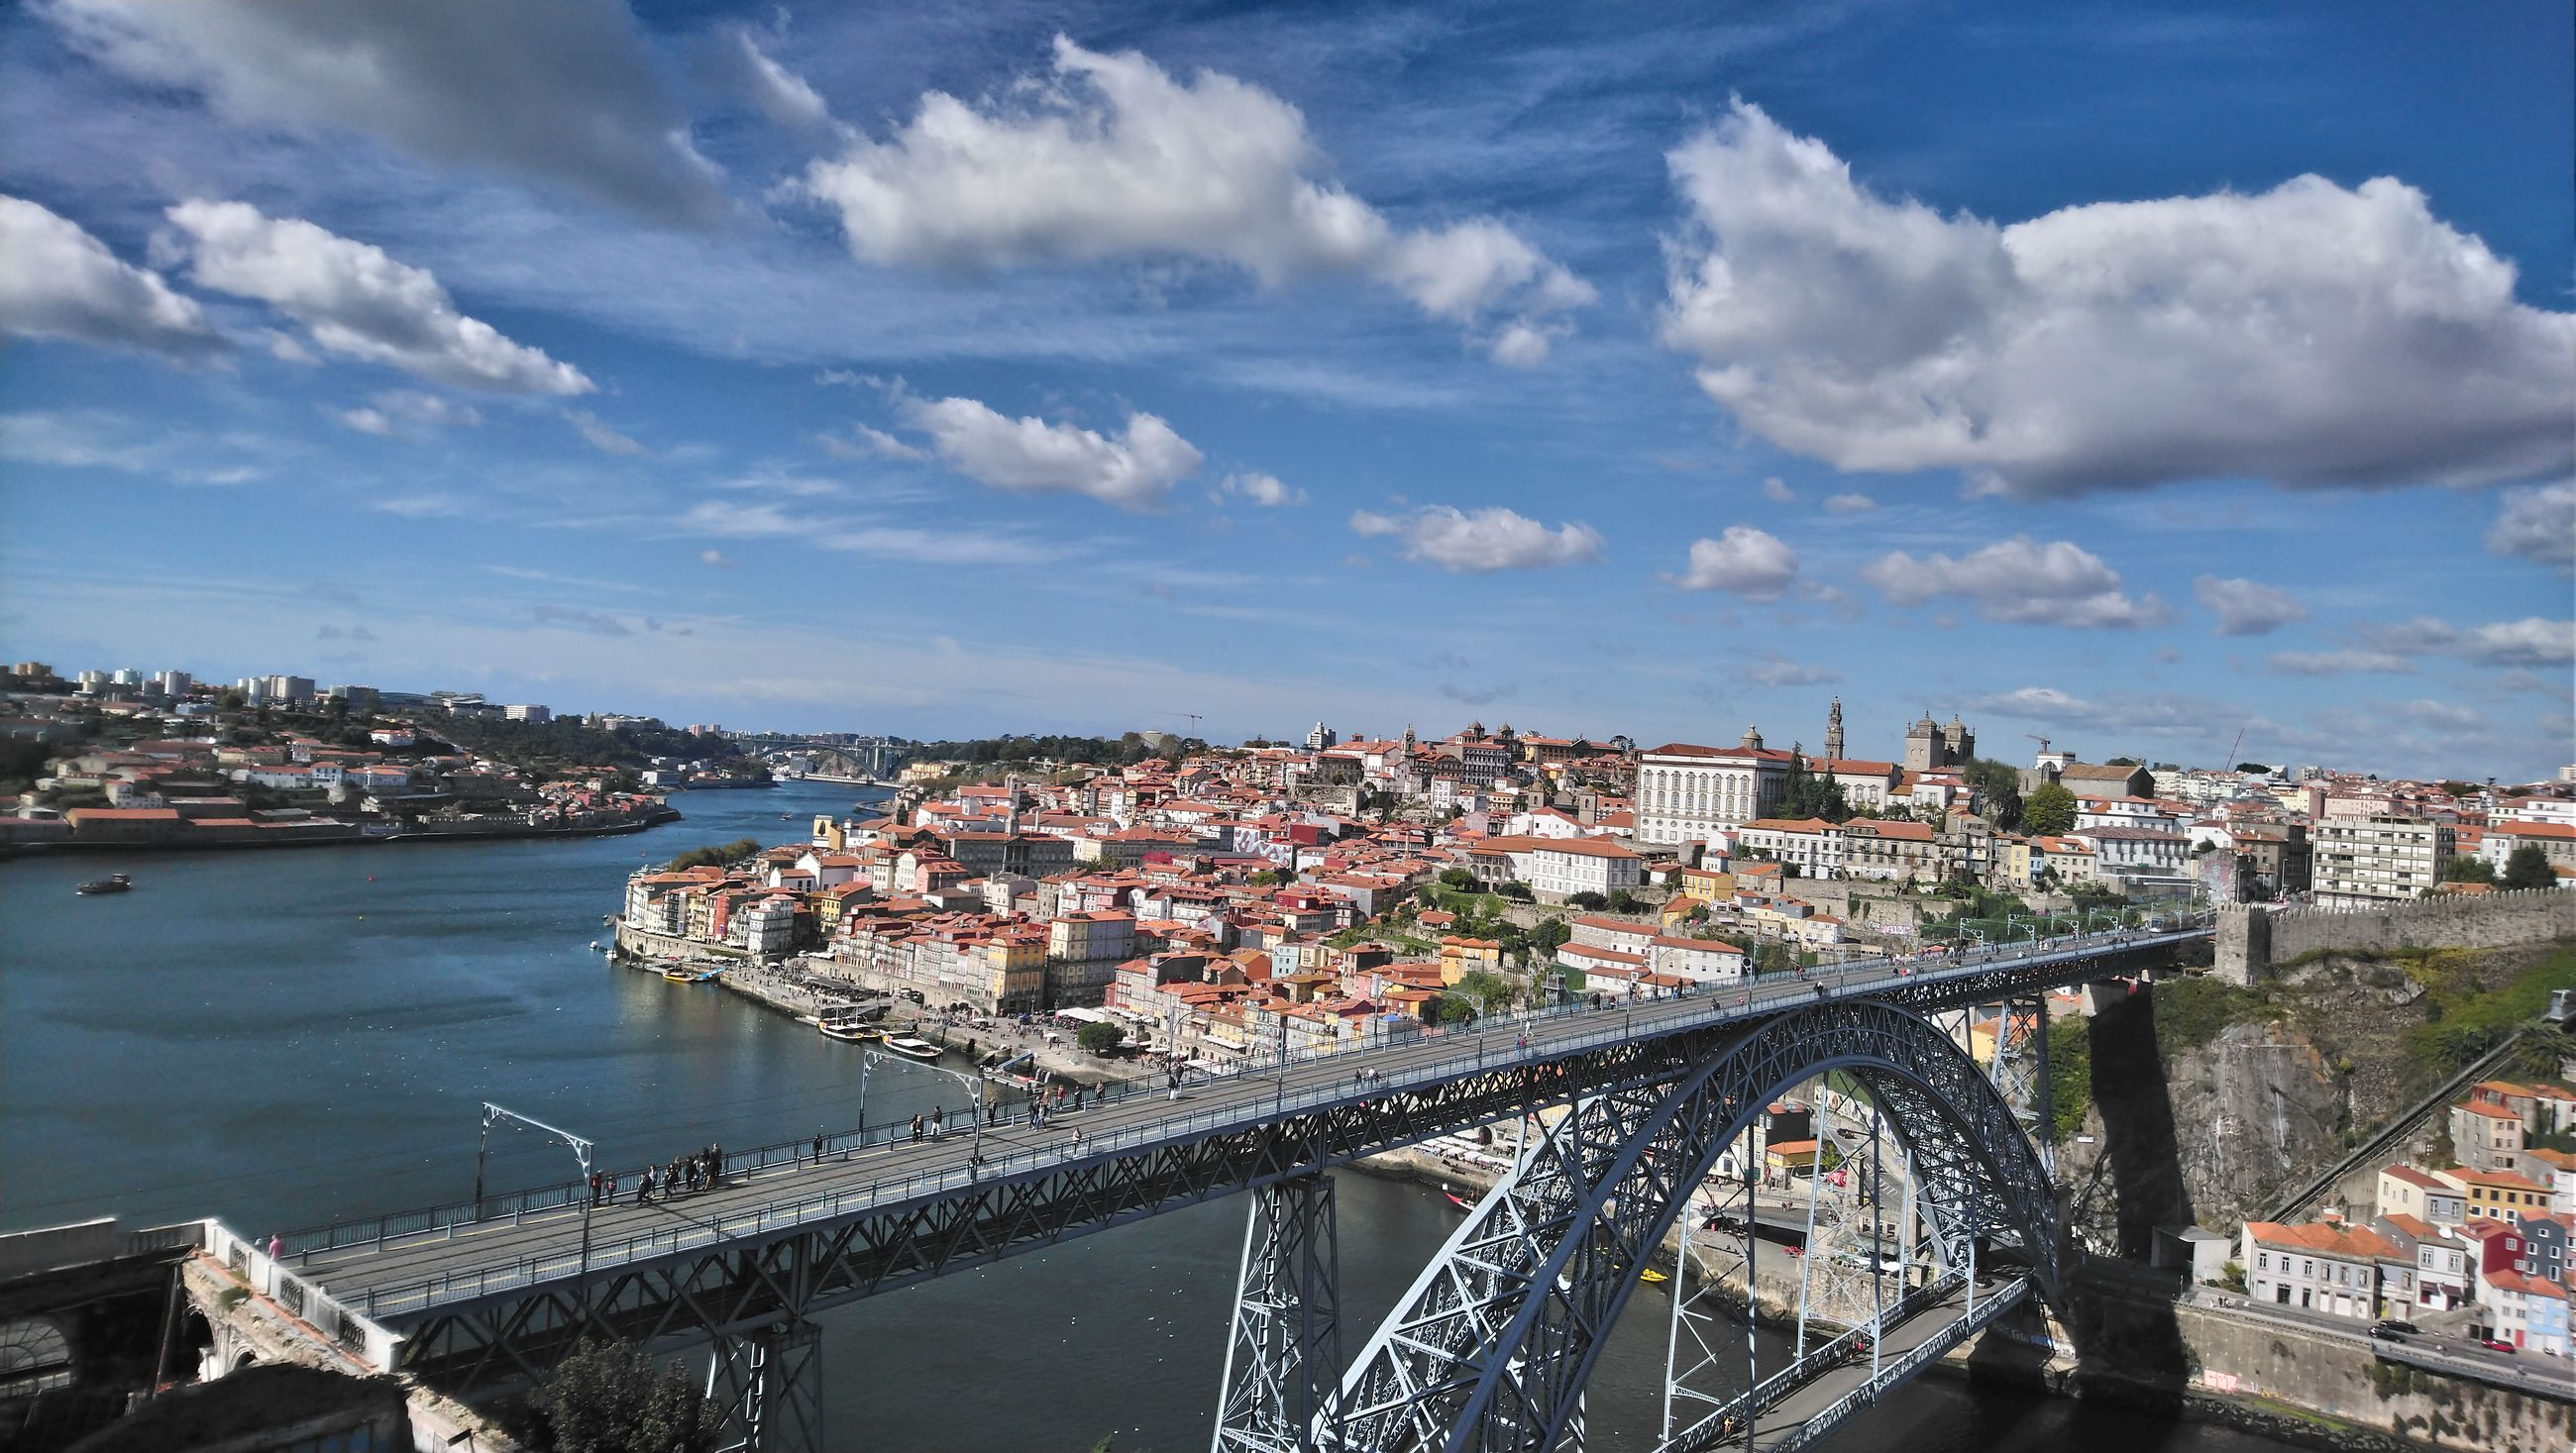 Aerial view of bridge over river by buildings in city